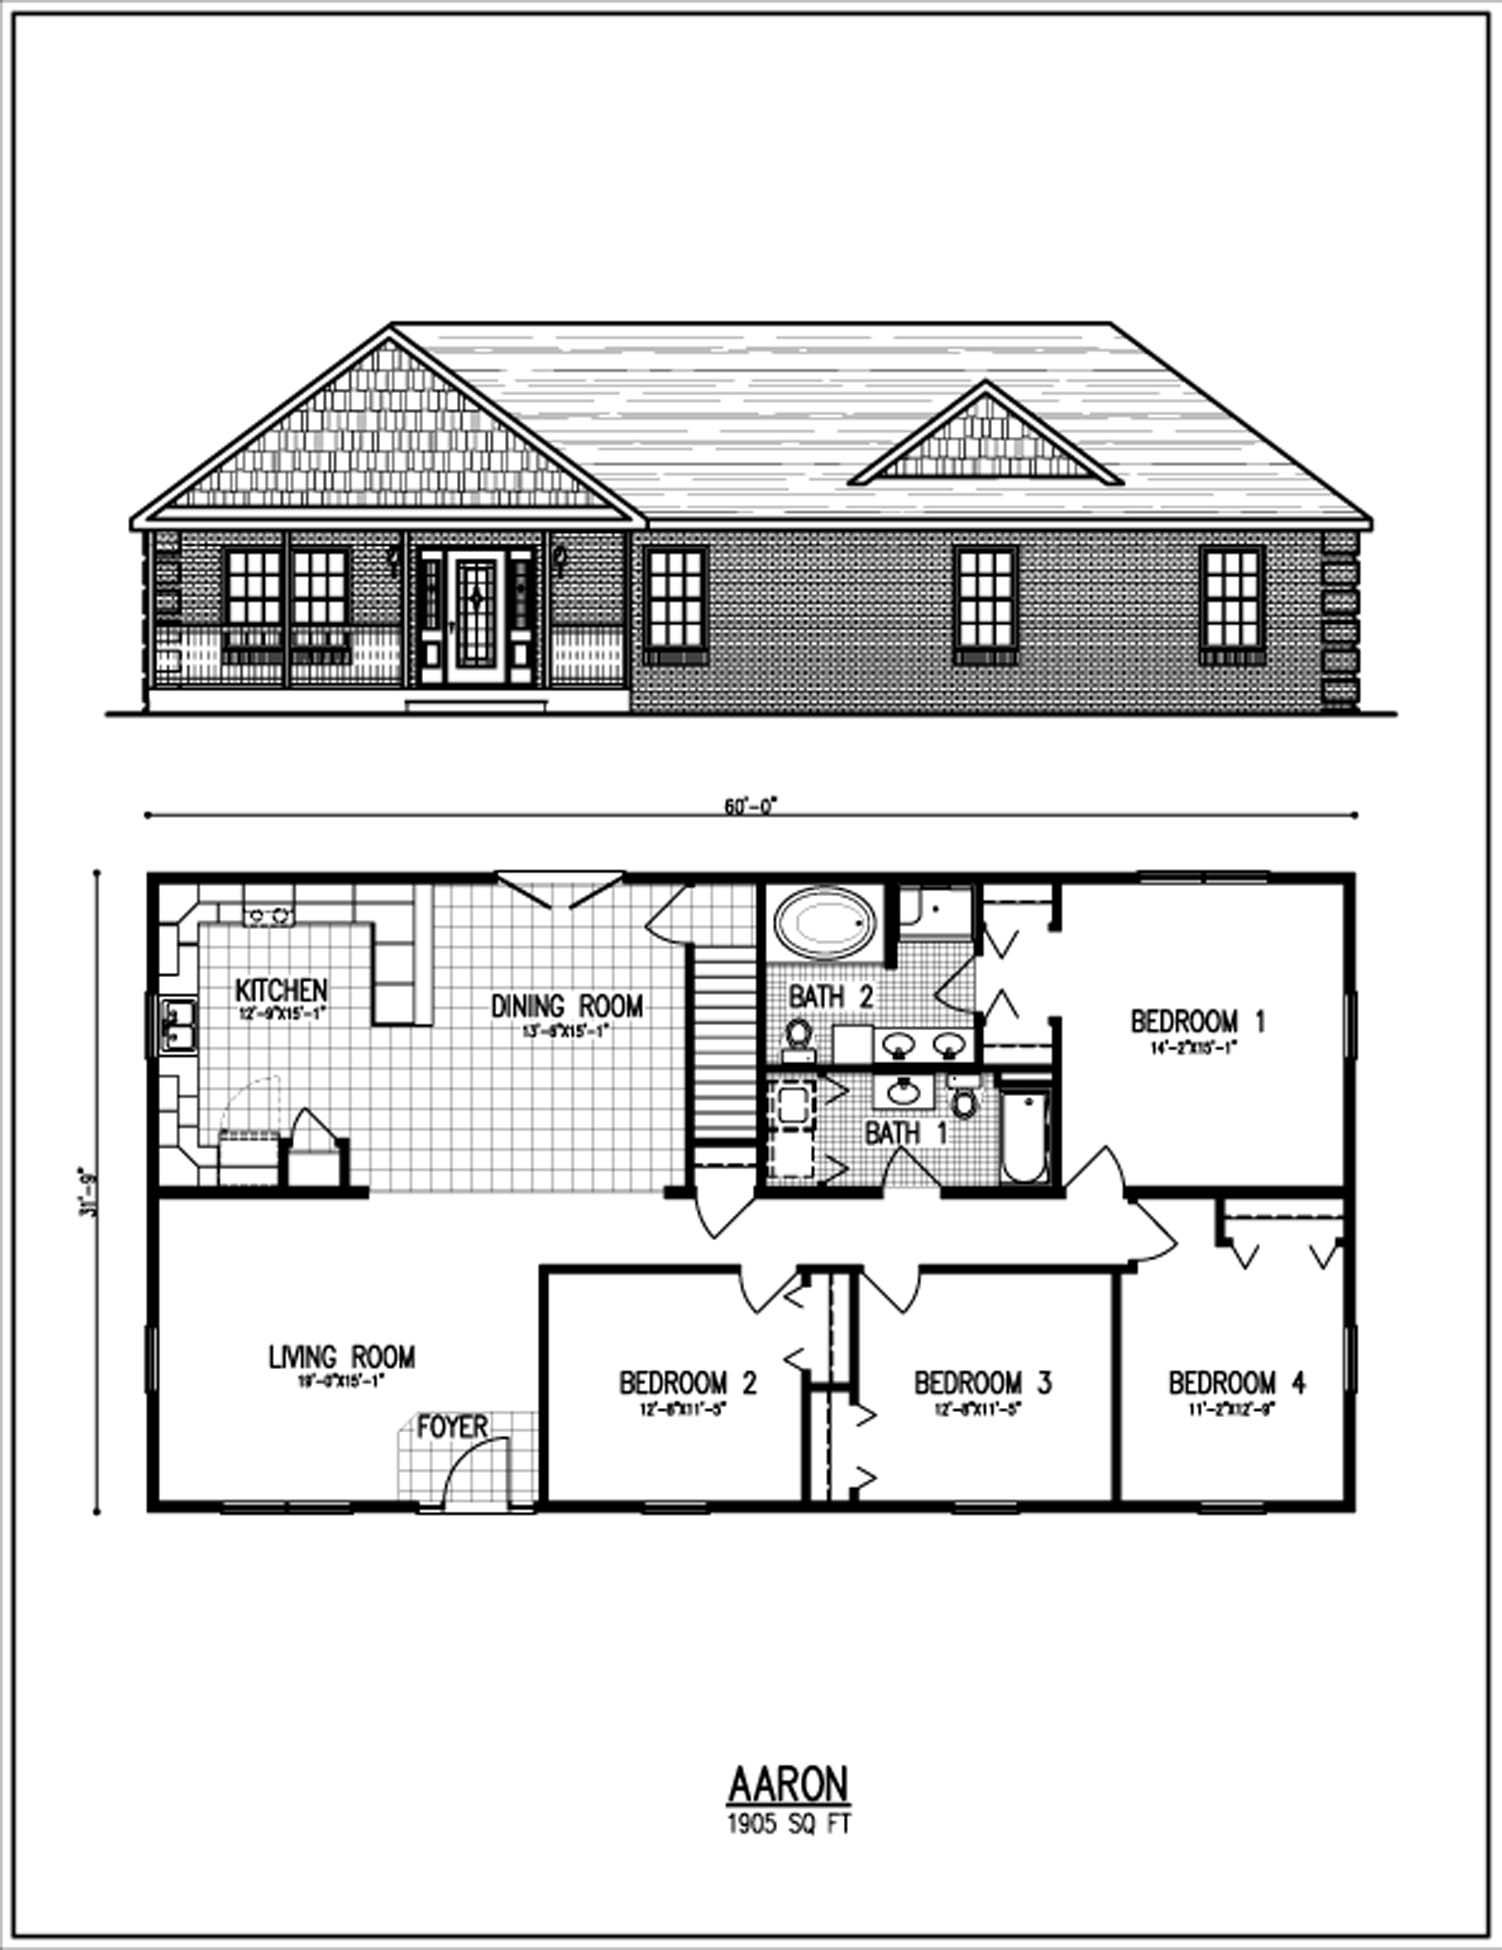 All american homes floorplan center staffordcape Small ranch home plans